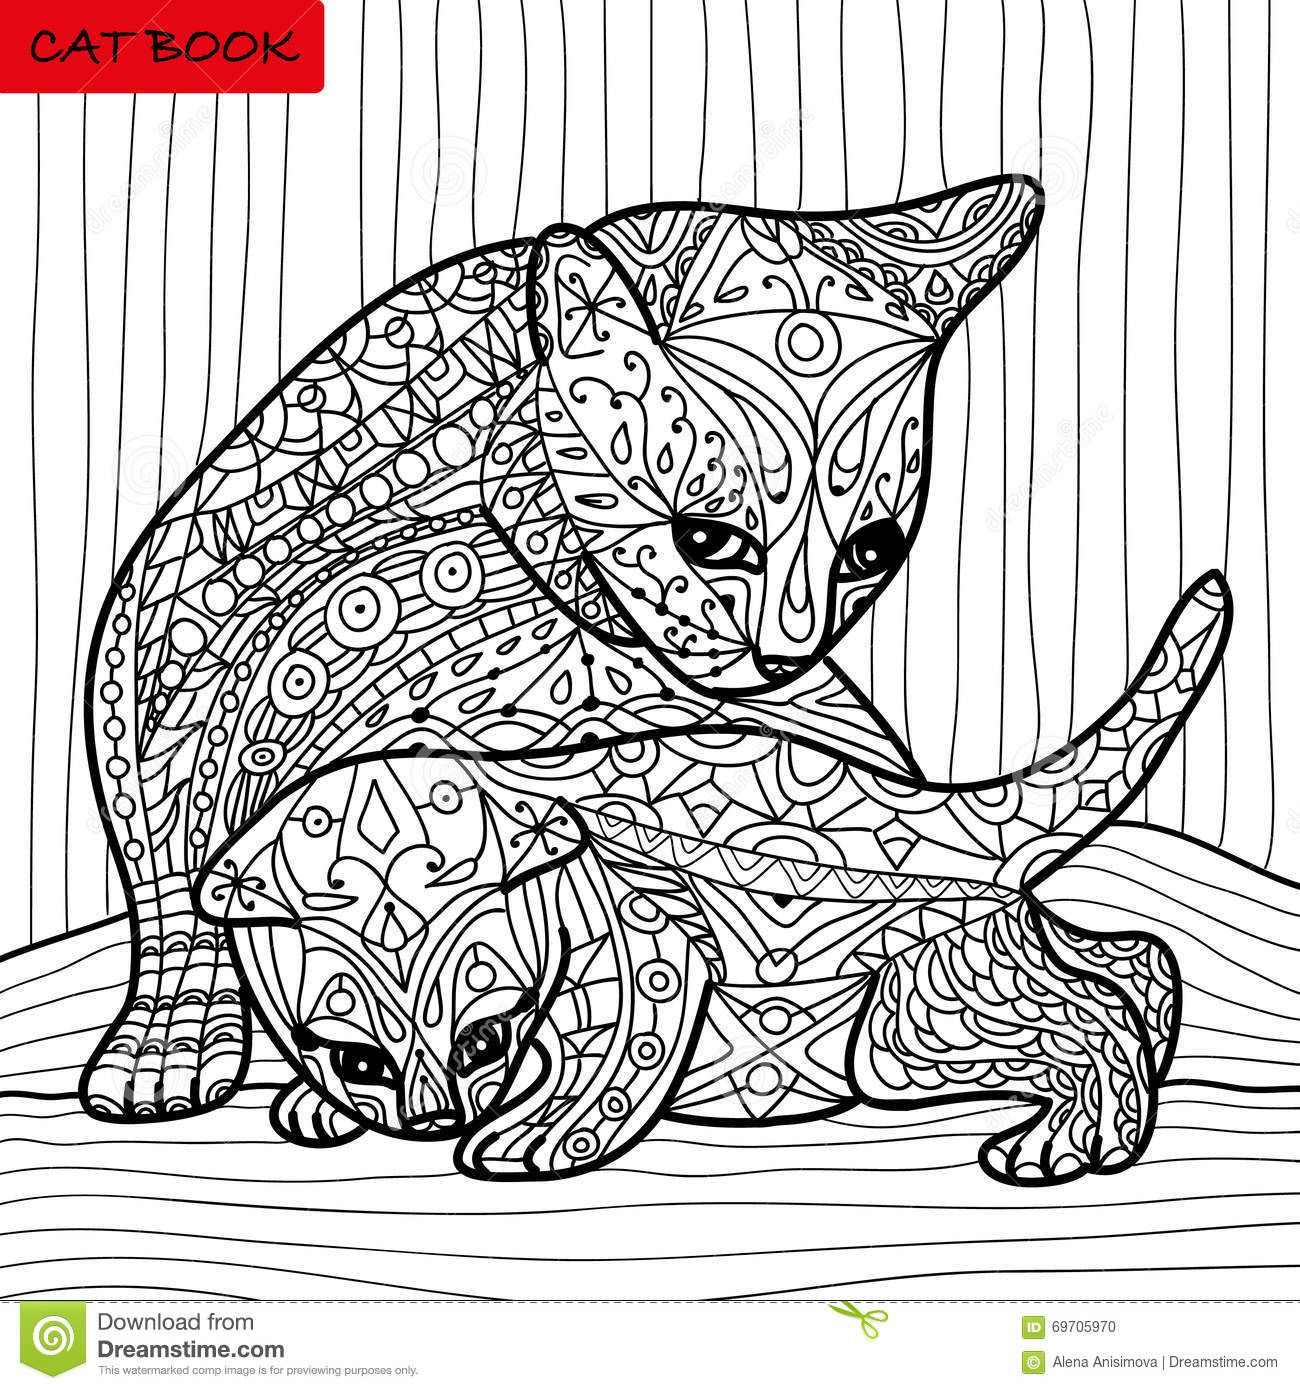 Pin By Barbara On Coloring Cat Cat Coloring Book Kitten Coloring Book Animal Coloring Pages [ 1390 x 1300 Pixel ]